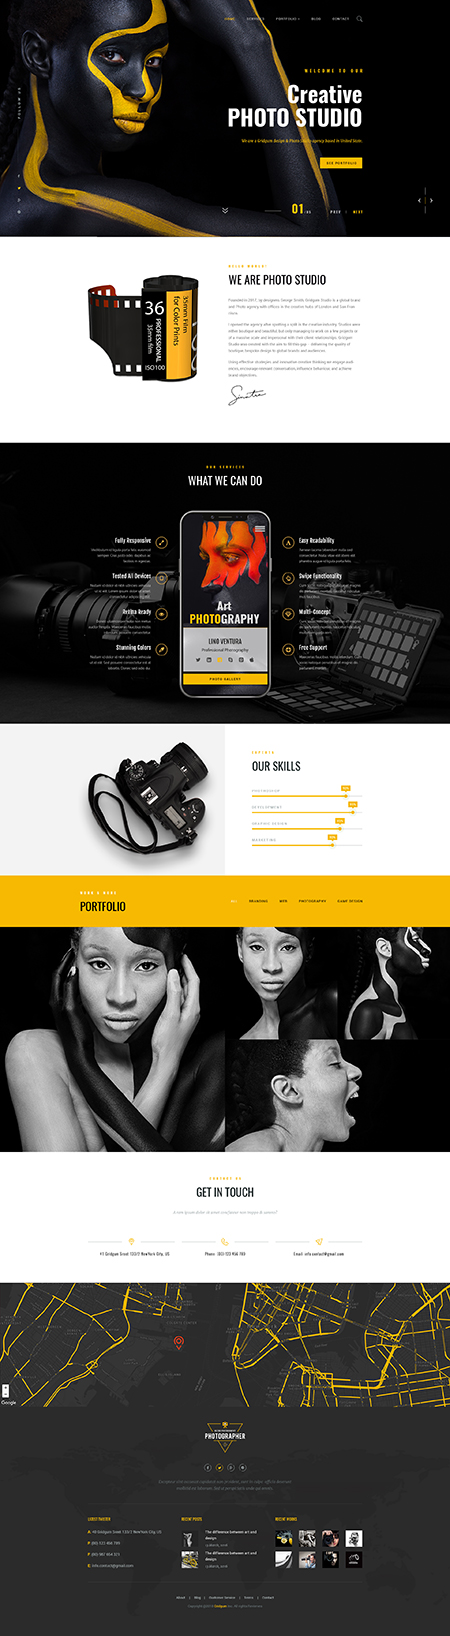 Photography theme Bootstrap template ID: 300111945